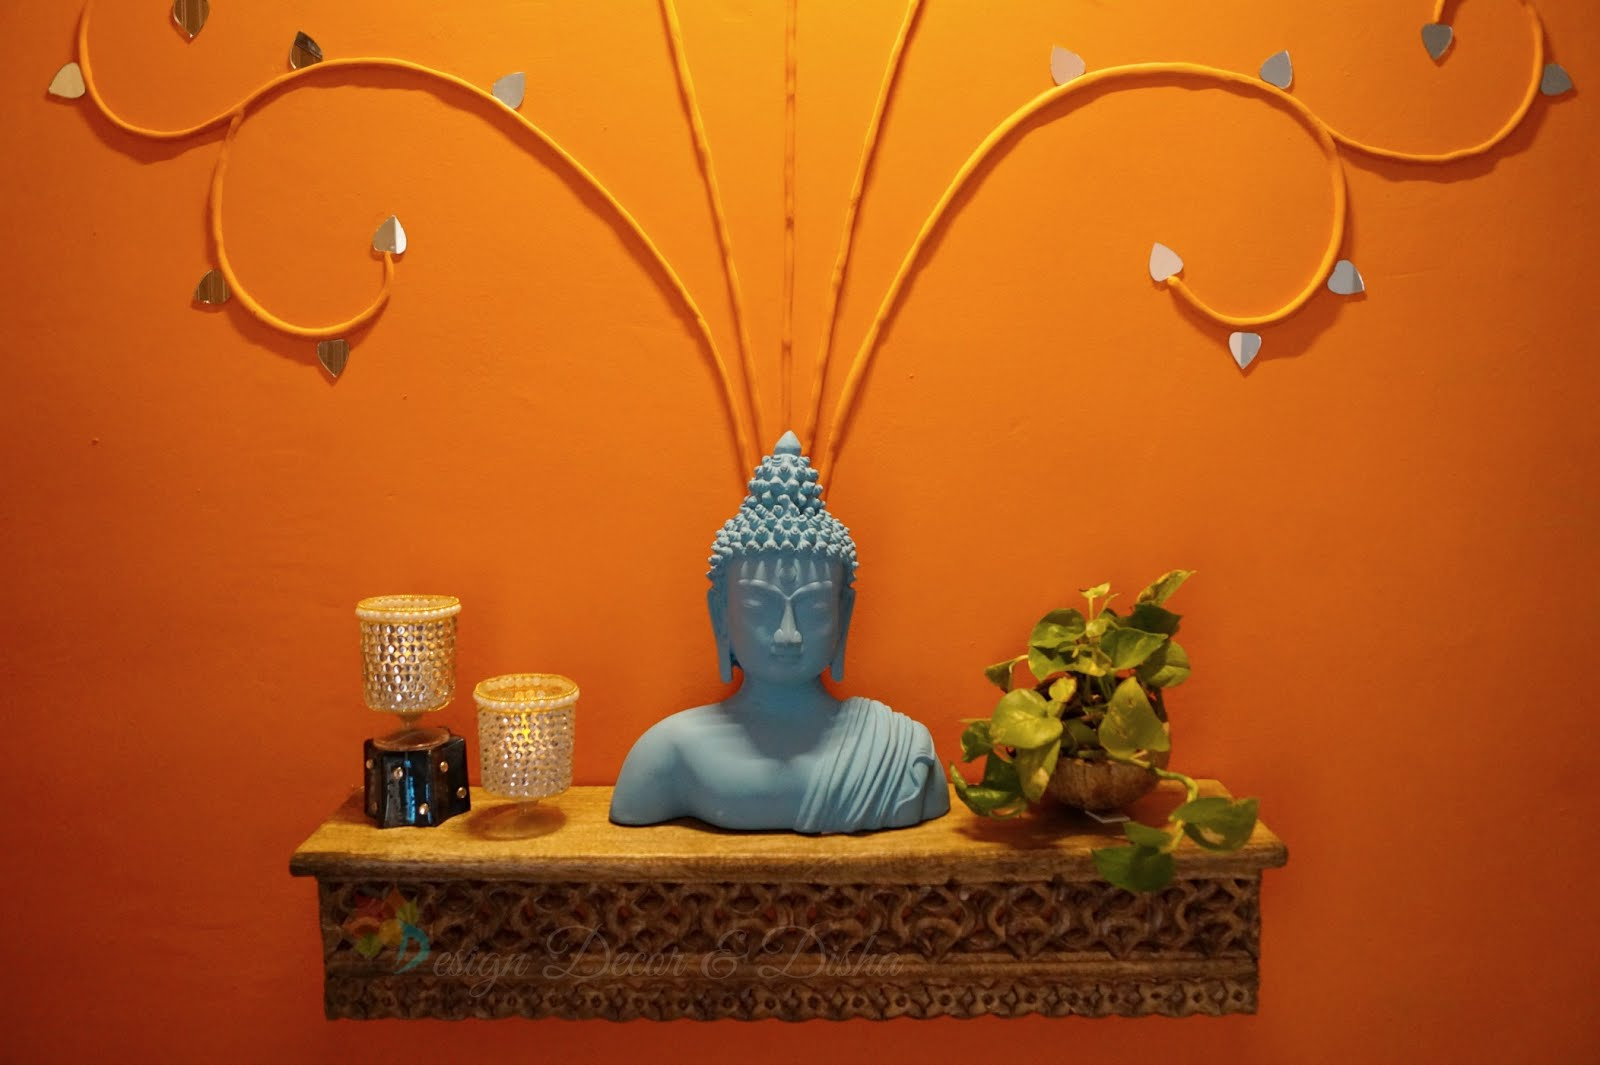 Luxury Turquoise Buddha bust pops beautifully against glowing rust wall and greens just add the cheer here